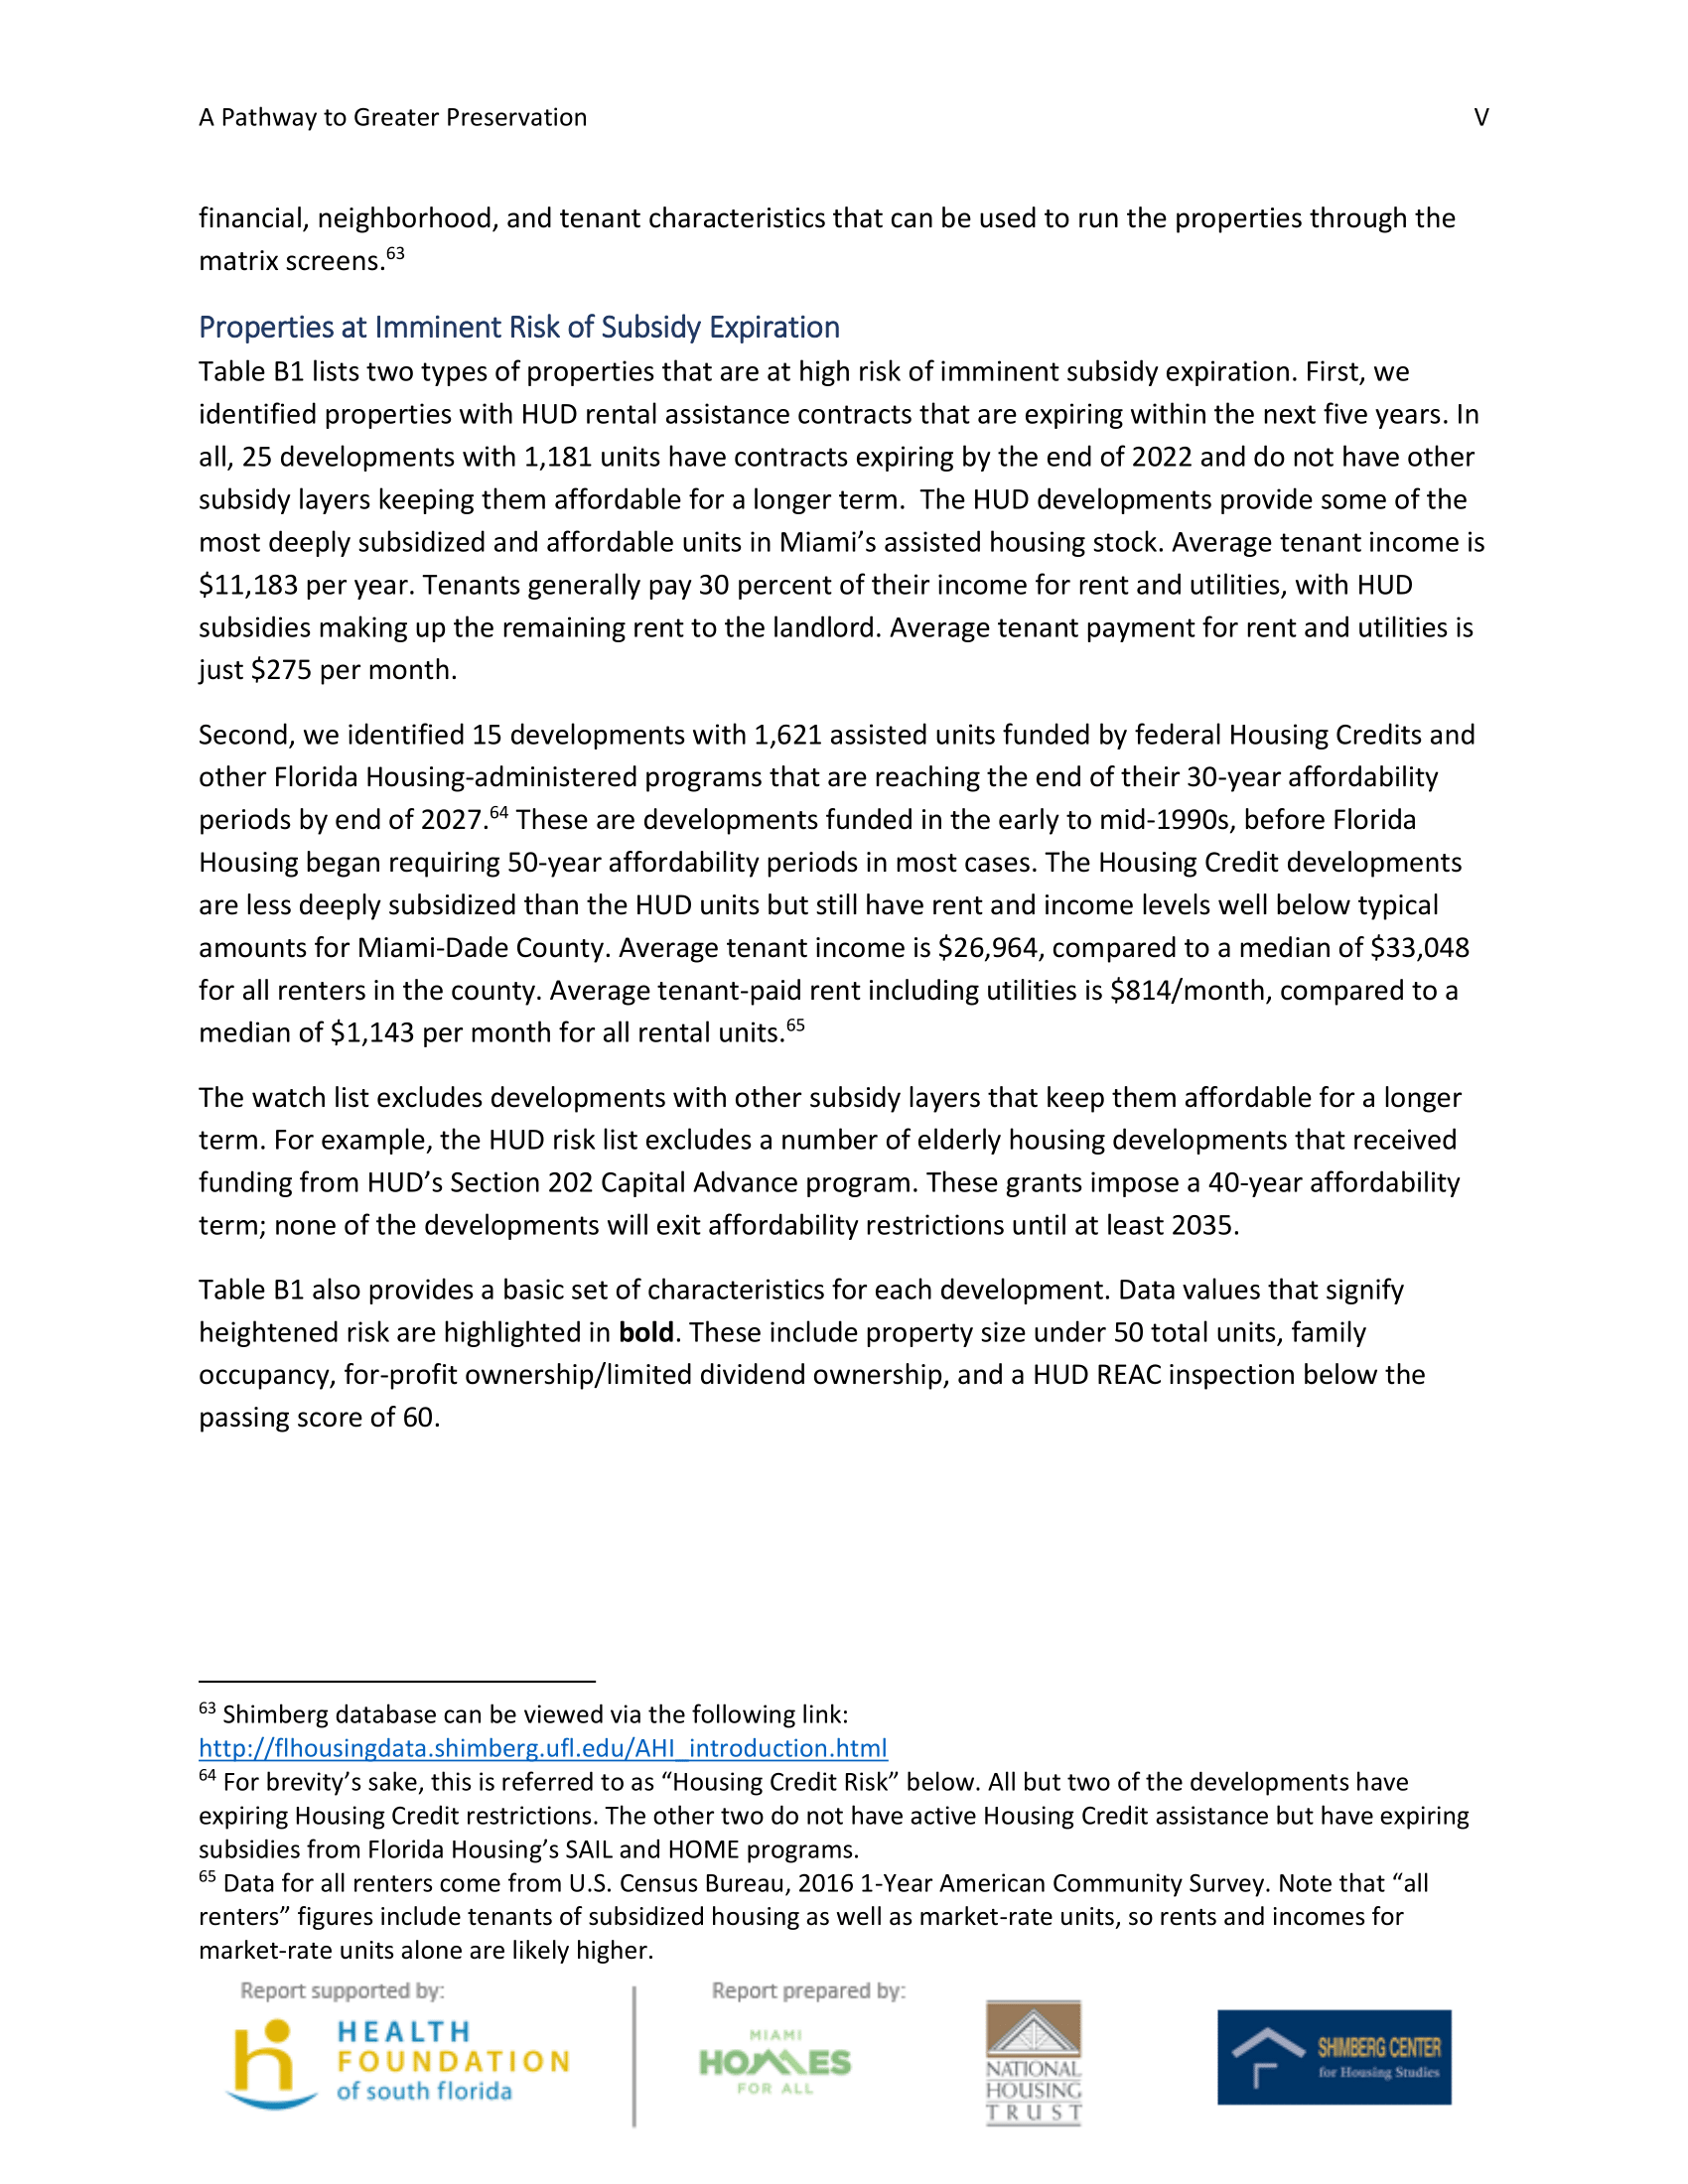 A Pathway to Greater Preservation - February 2018-51.png